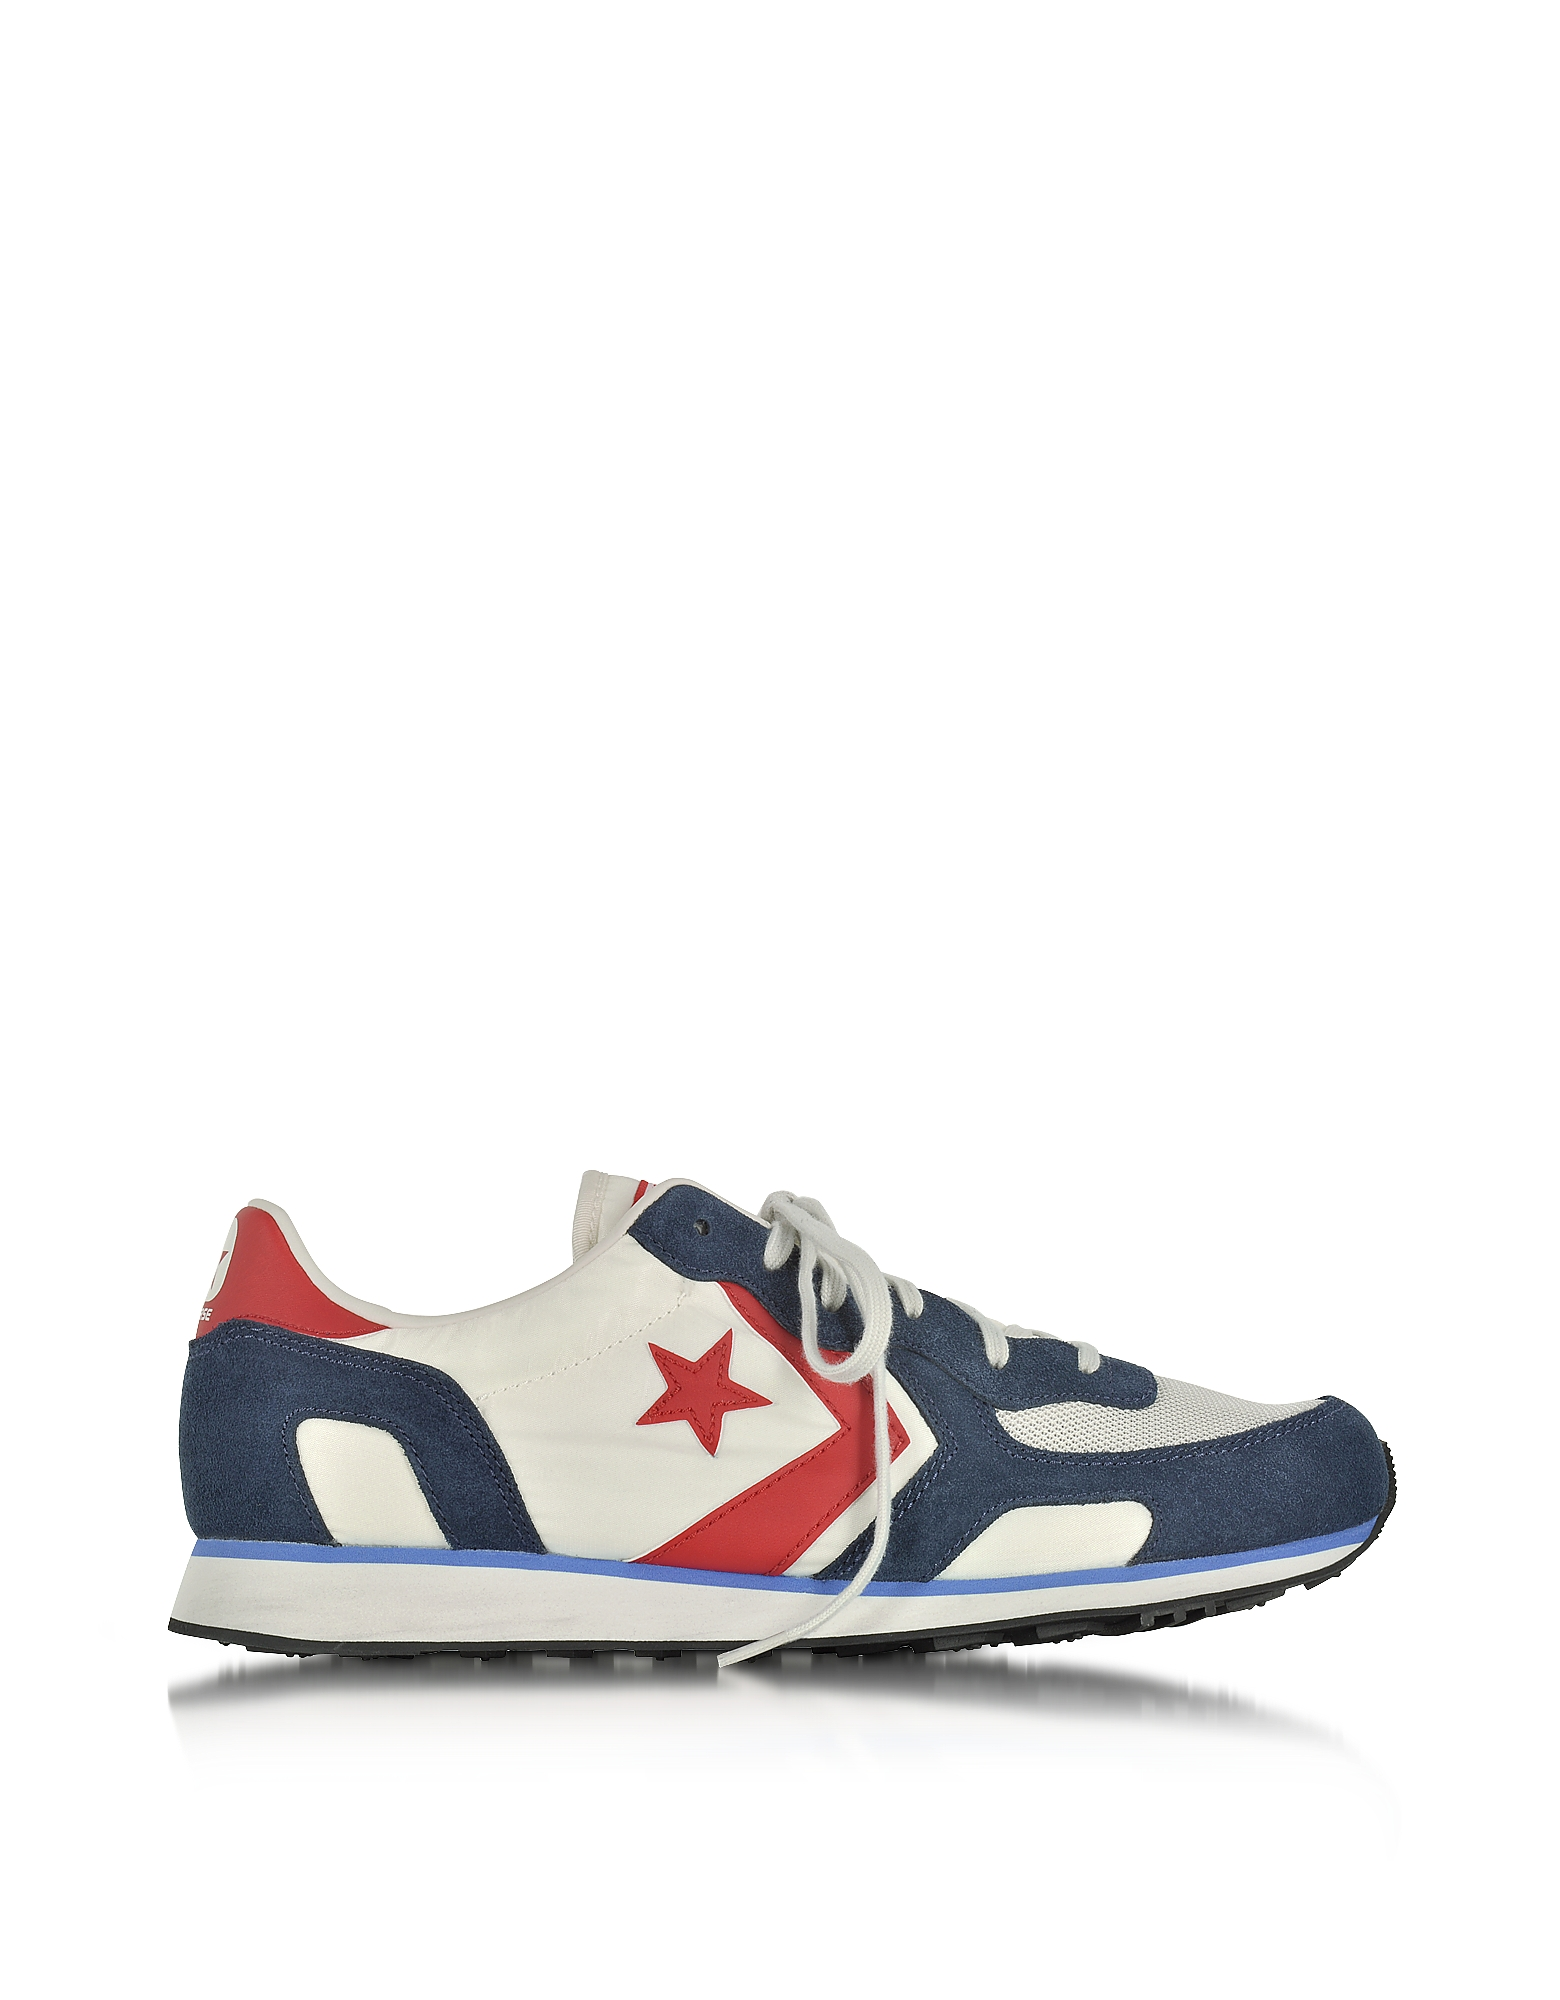 Converse Limited Edition Auckland Racer Distressed Ox - Мужские Кроссовки Отенков Vaporous Gary/Athletic Navy